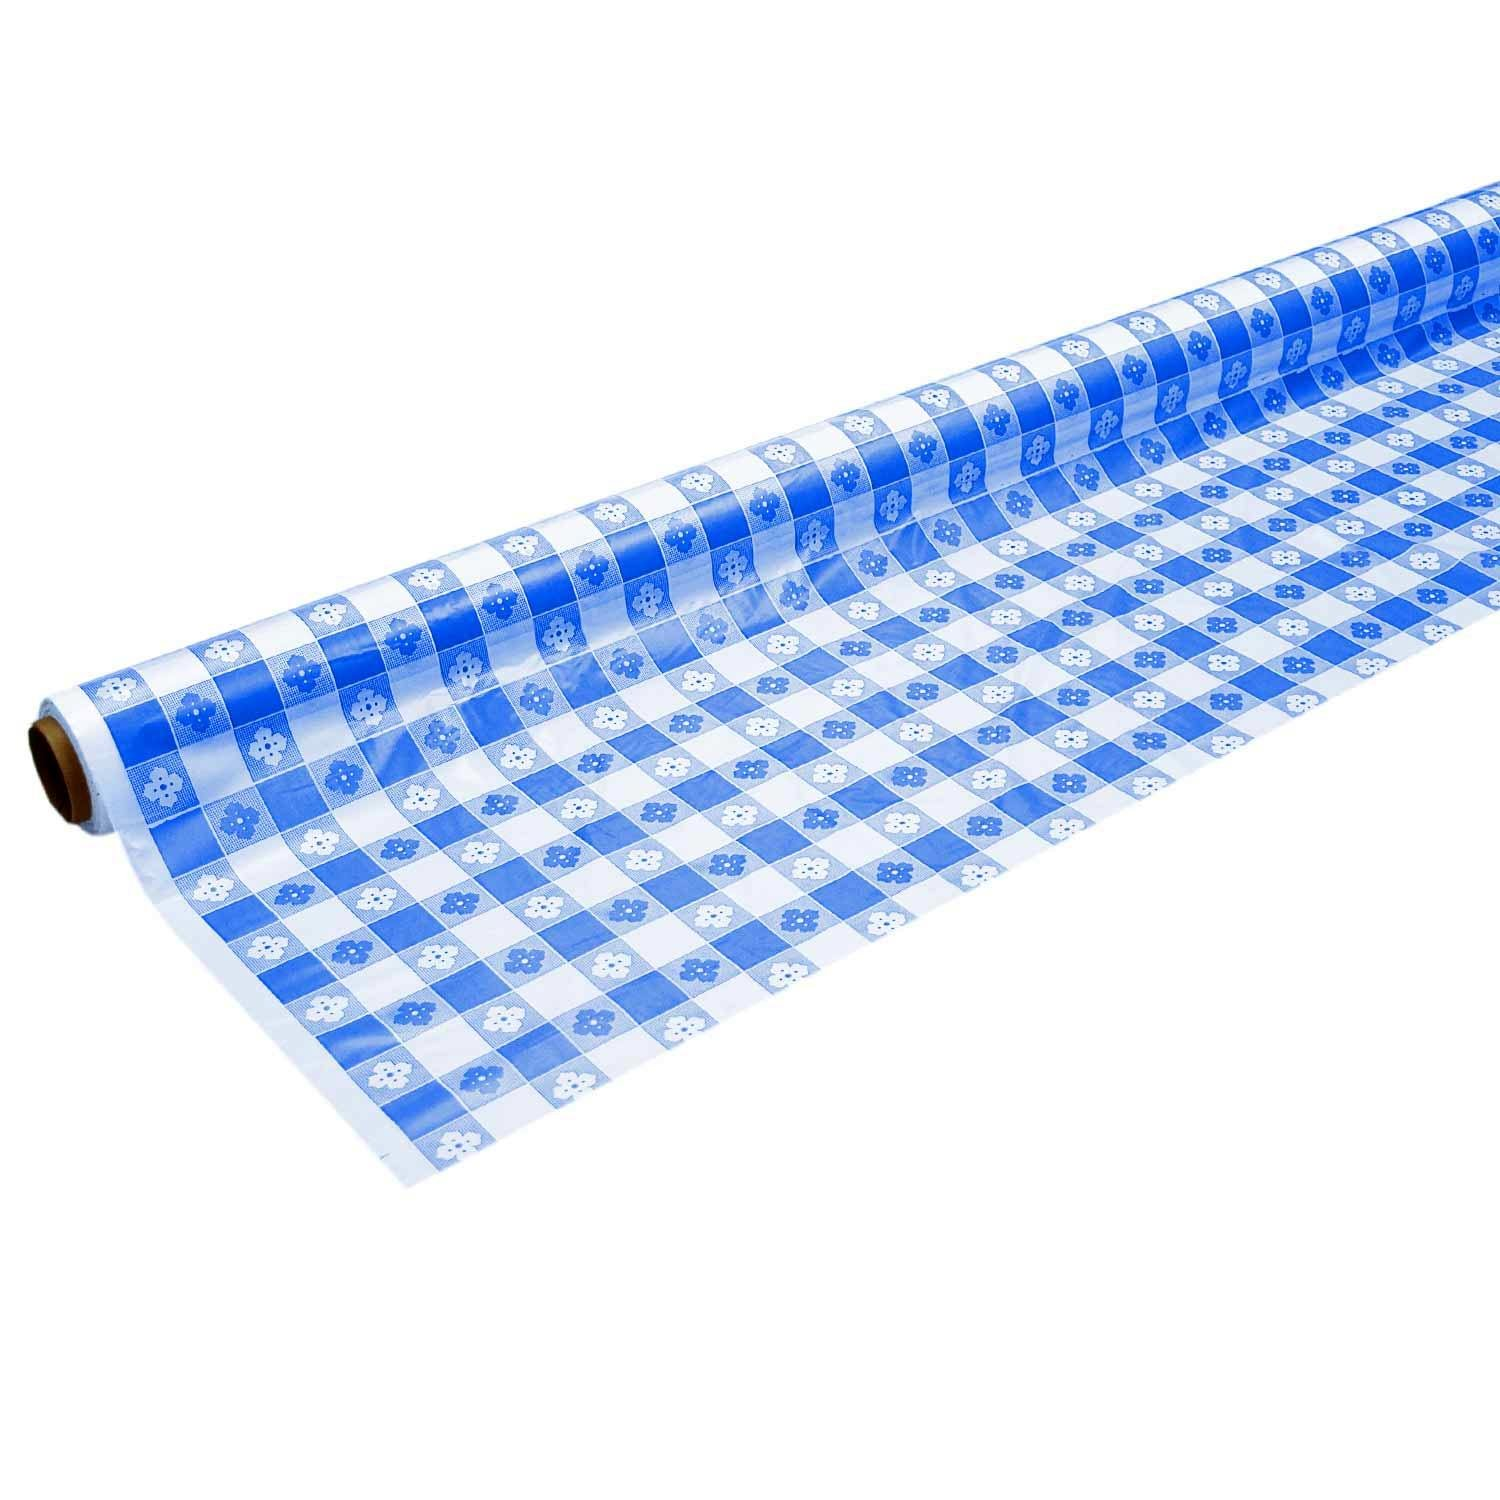 Party Essentials Heavy Duty Printed Plastic Banquet Table Roll Available in 27 Colors, 40'' x 150', Blue Gingham